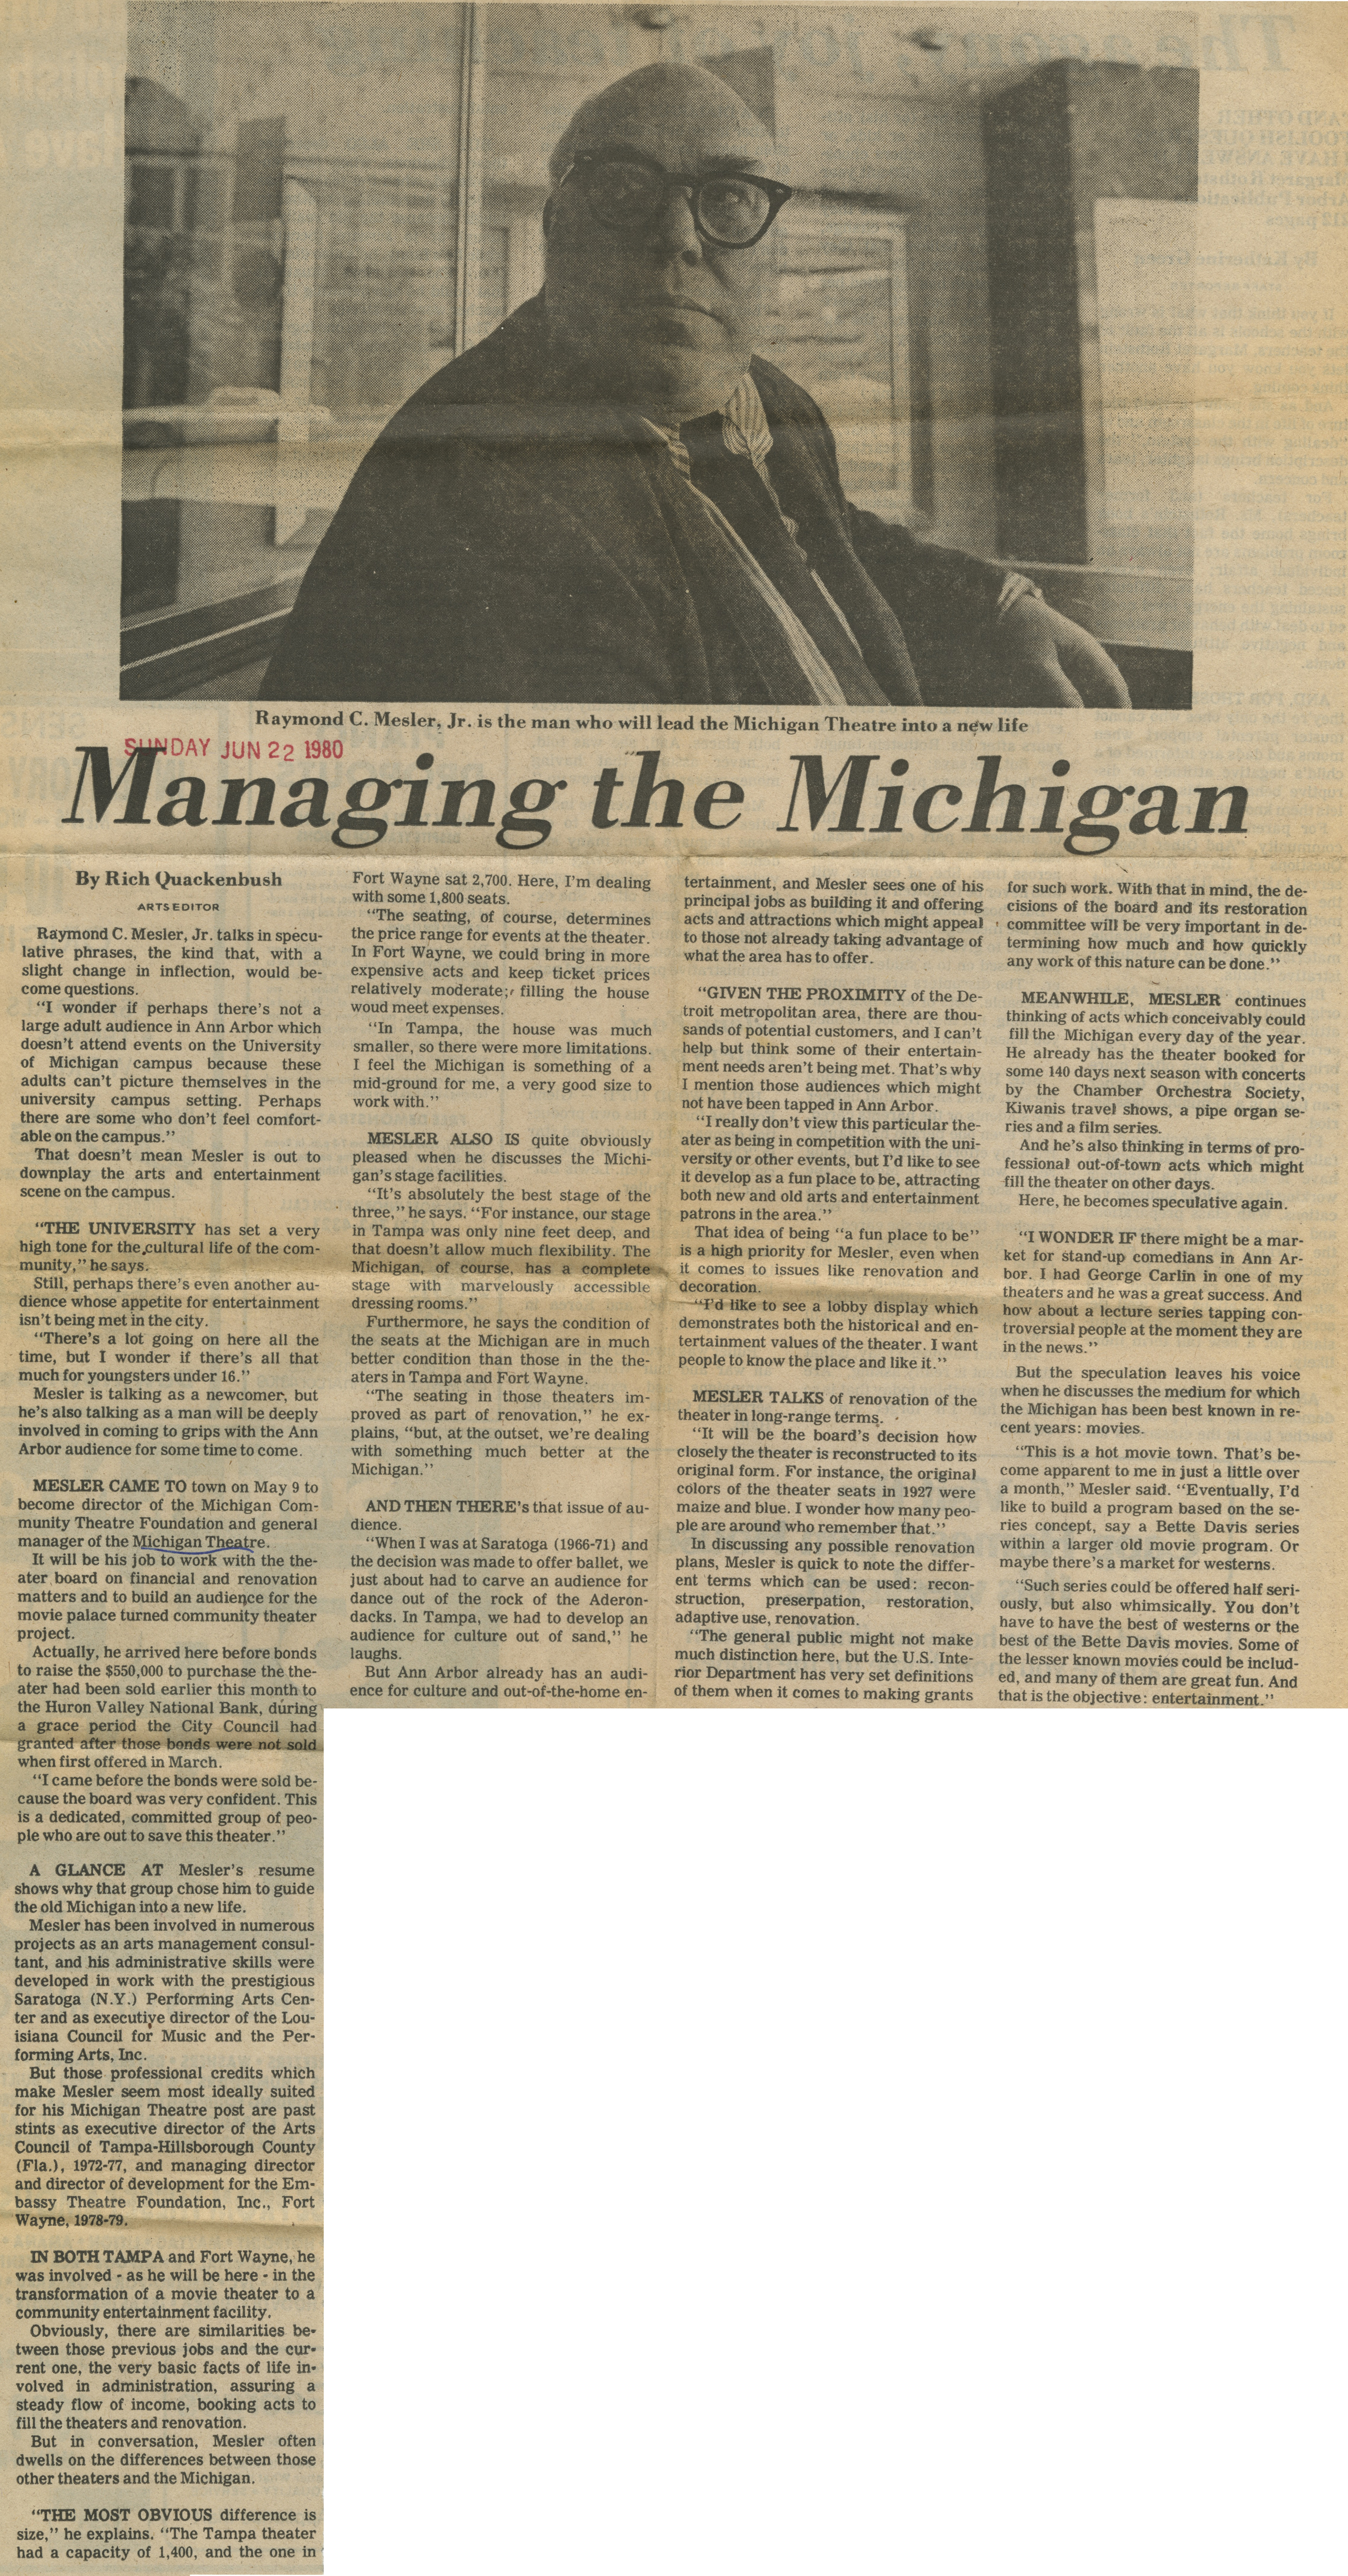 Managing the Michigan image